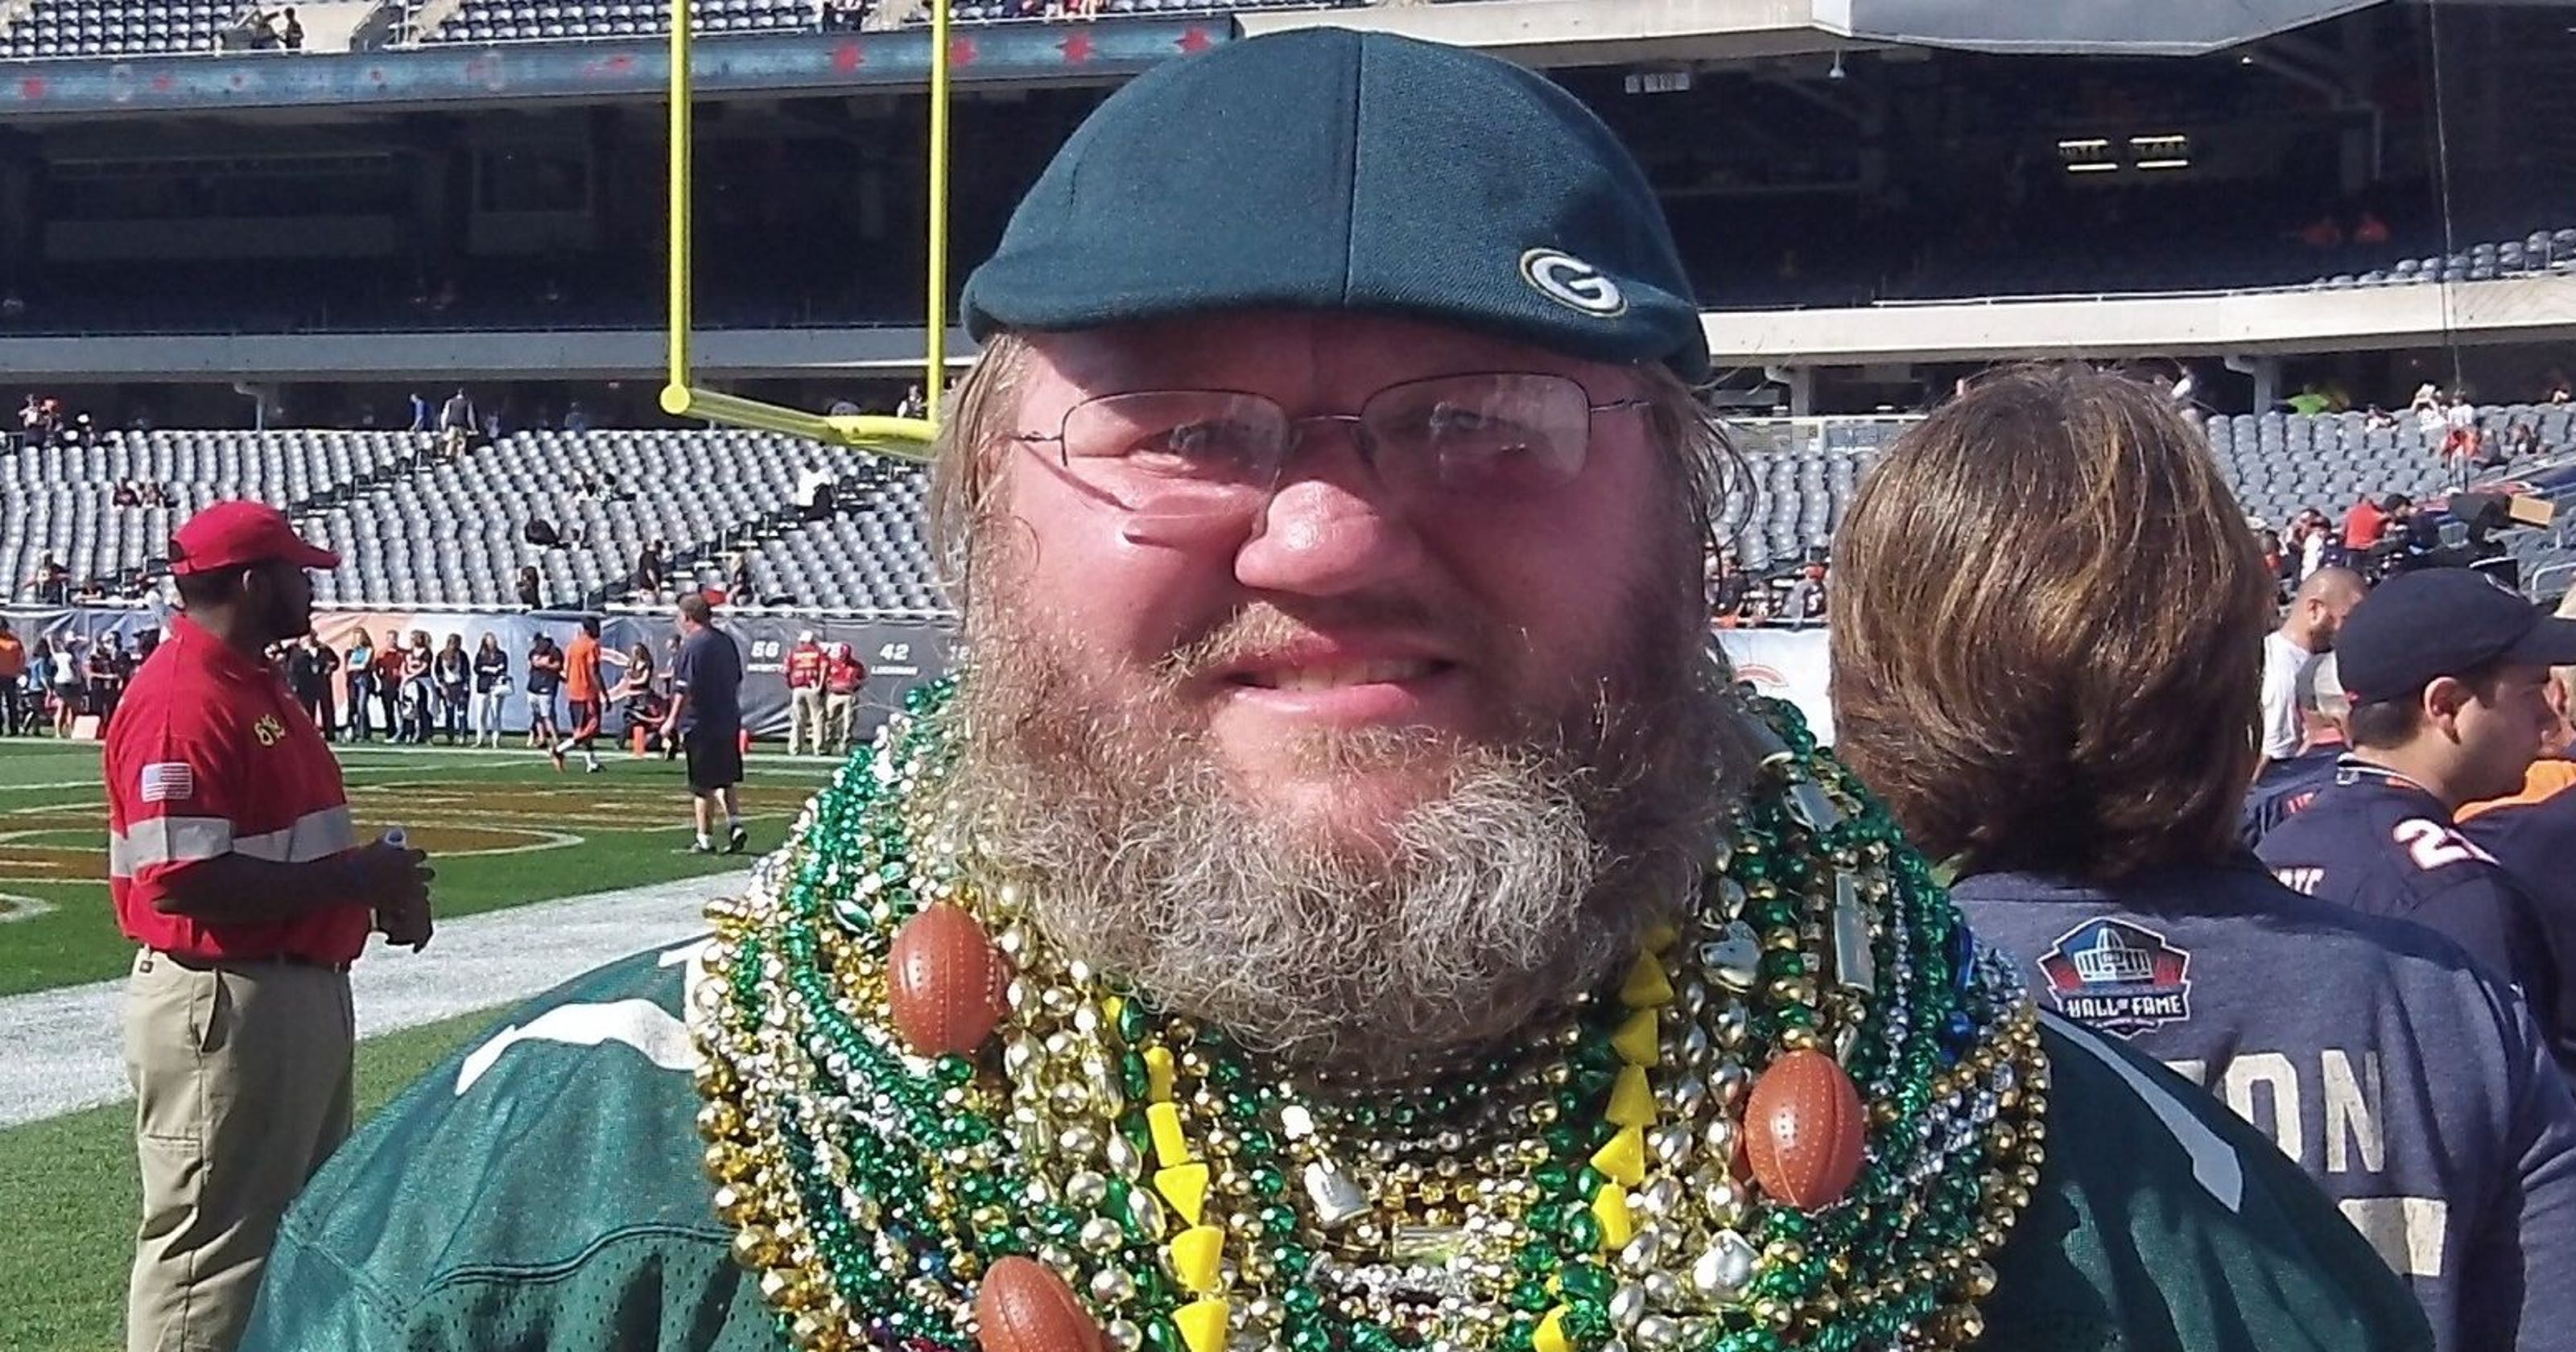 Green Bay Packers fan s lawsuit against Chicago Bears gets the go-ahead bf4f43803